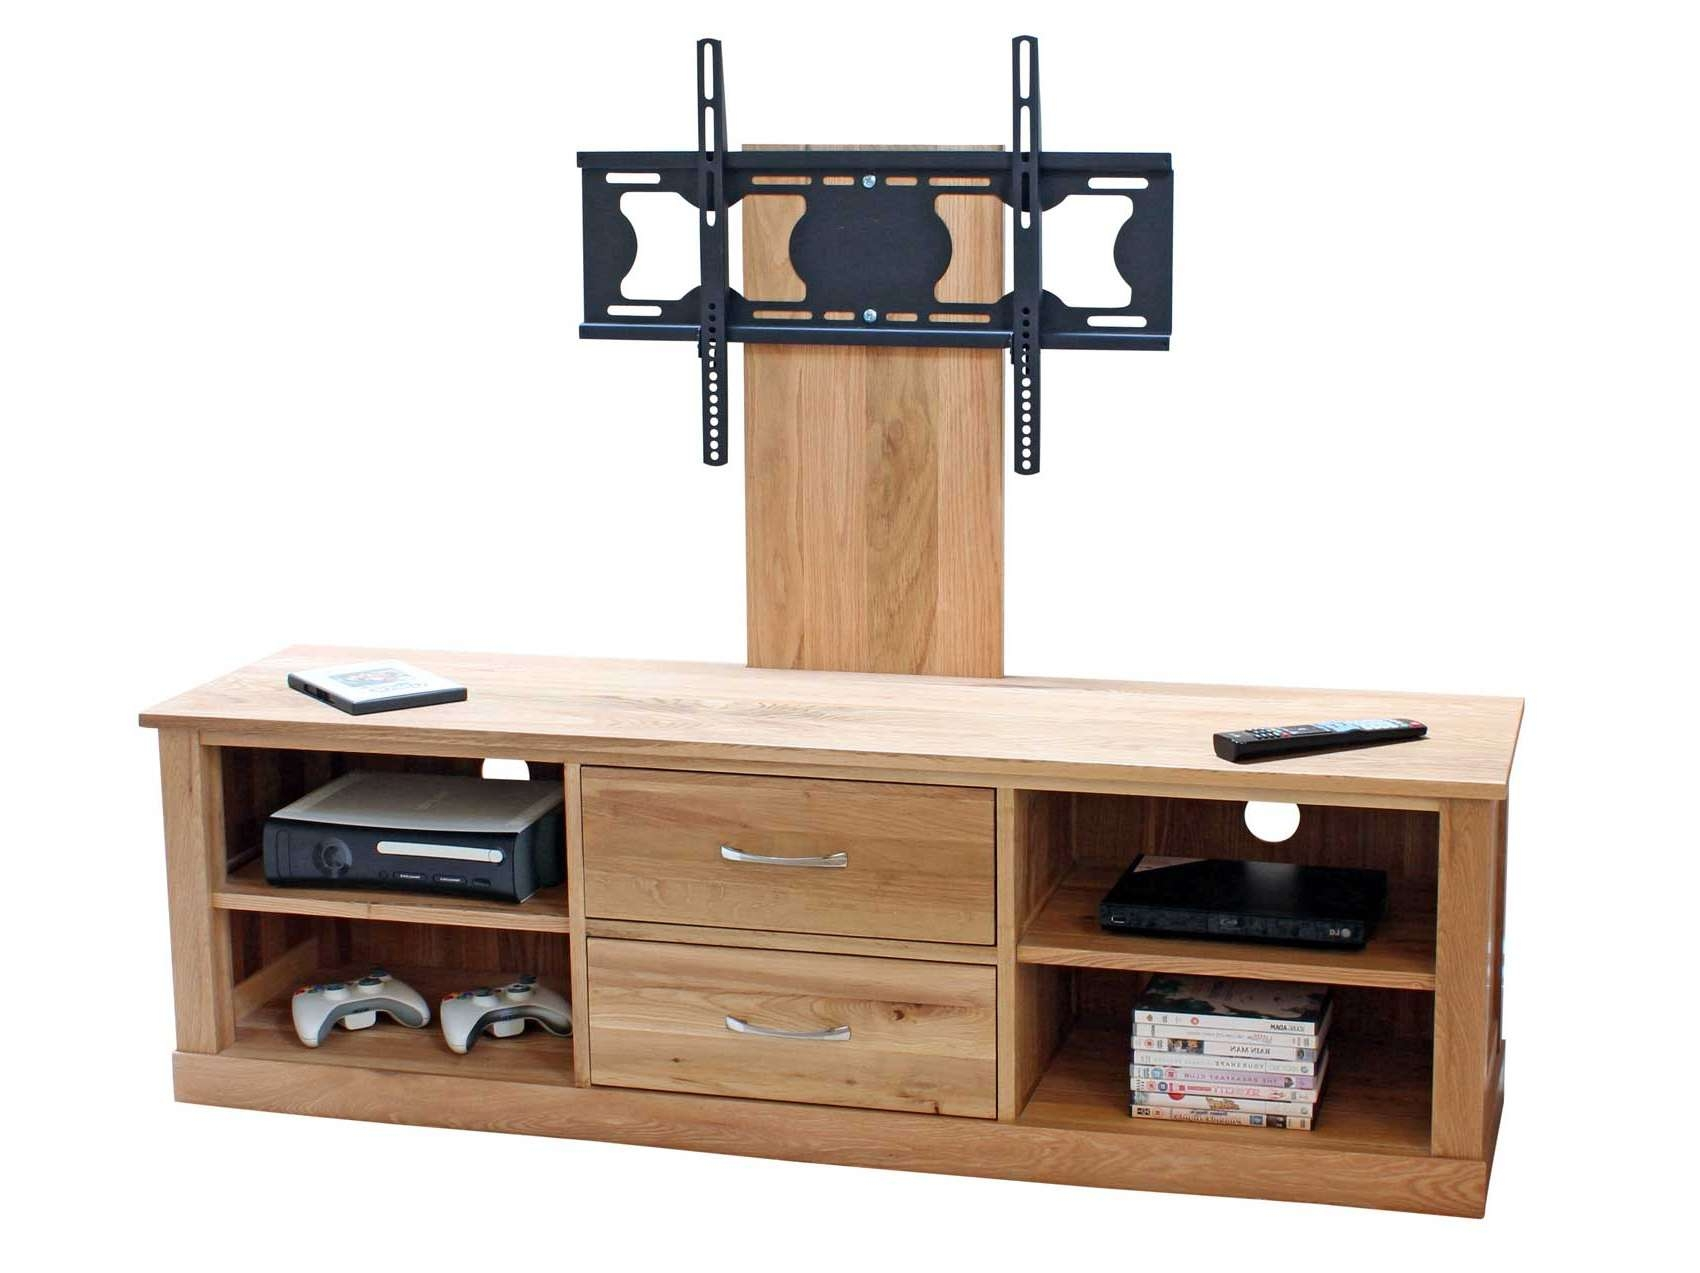 Illustrious Tv Stands Oak Furniture Land Tags : Tv Stands In Oak With Regard To Oak Furniture Tv Stands (View 4 of 20)